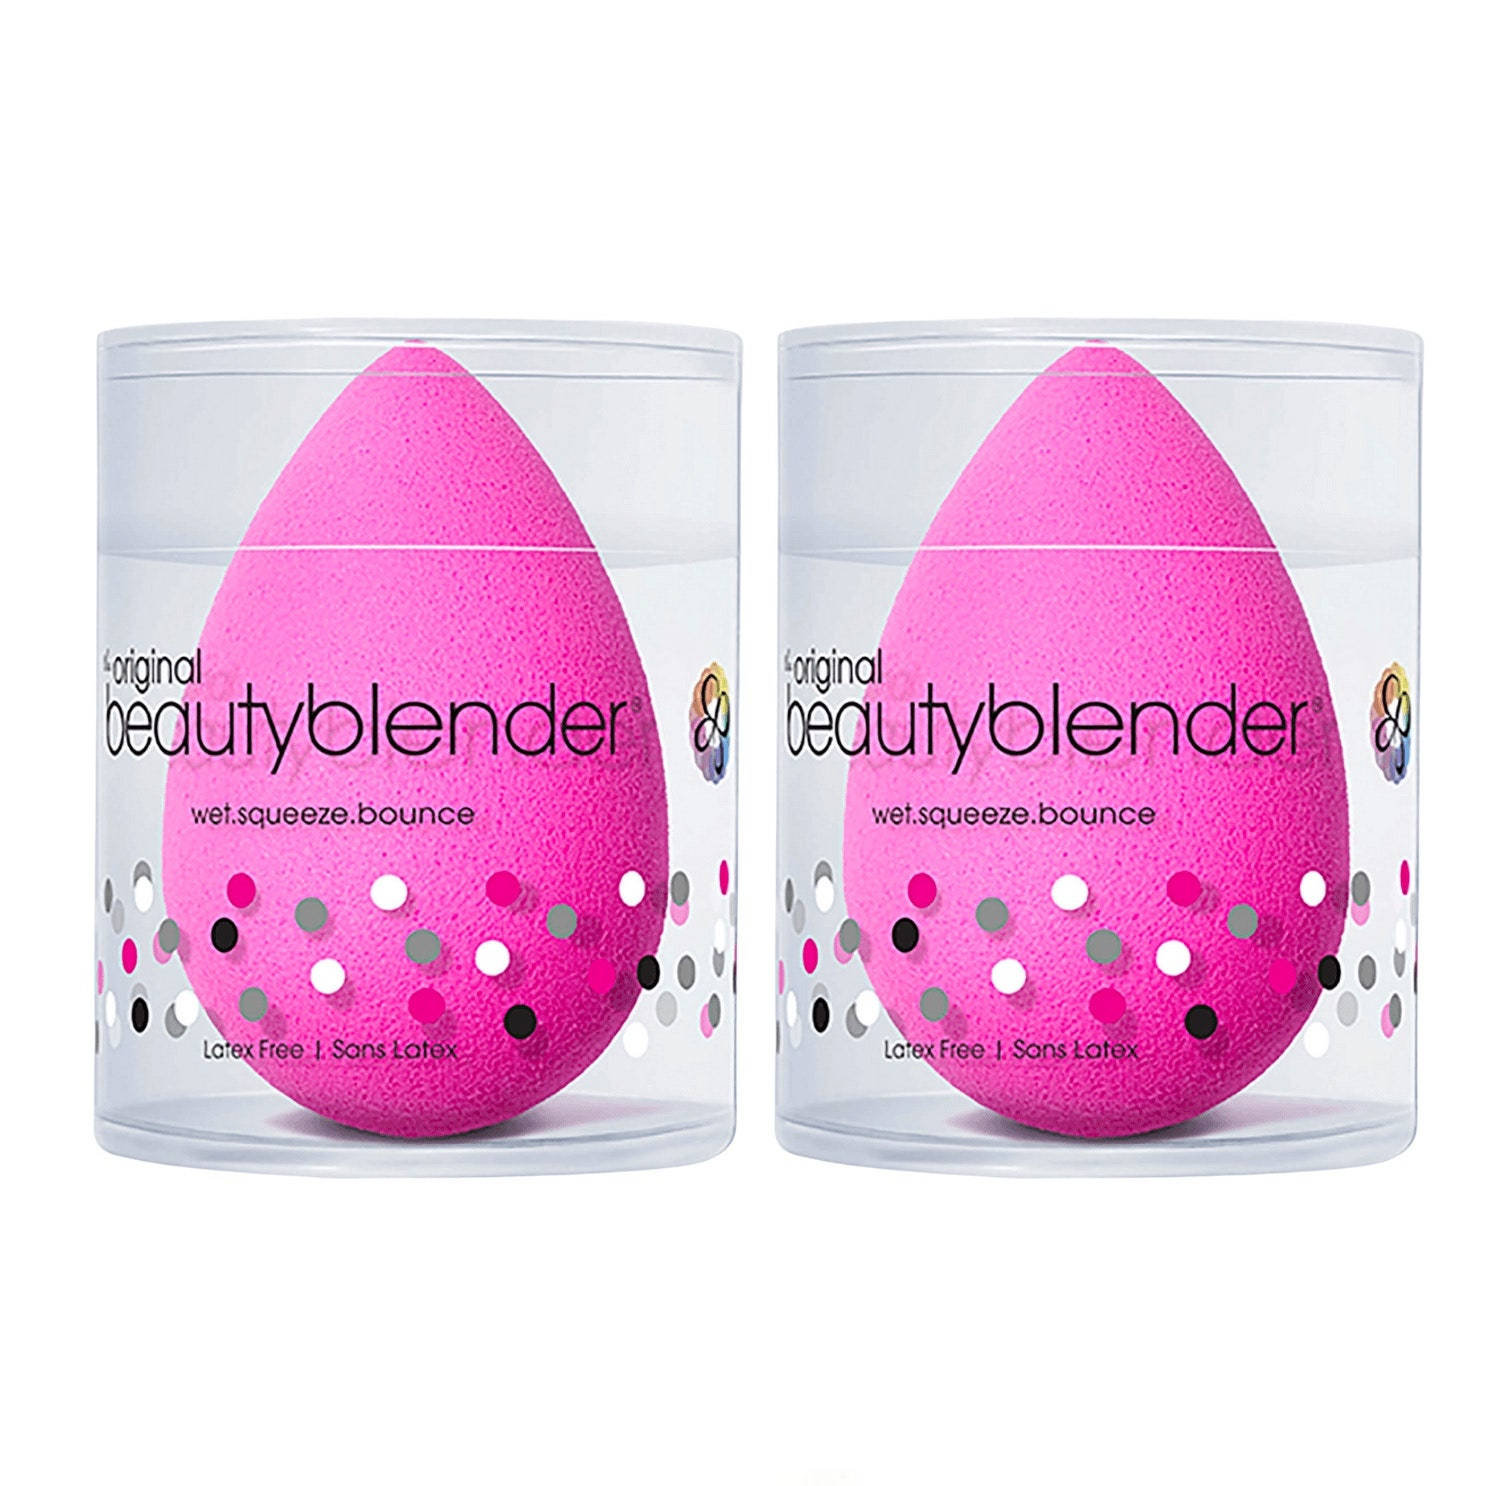 set of pink beauty blenders in clear boxes